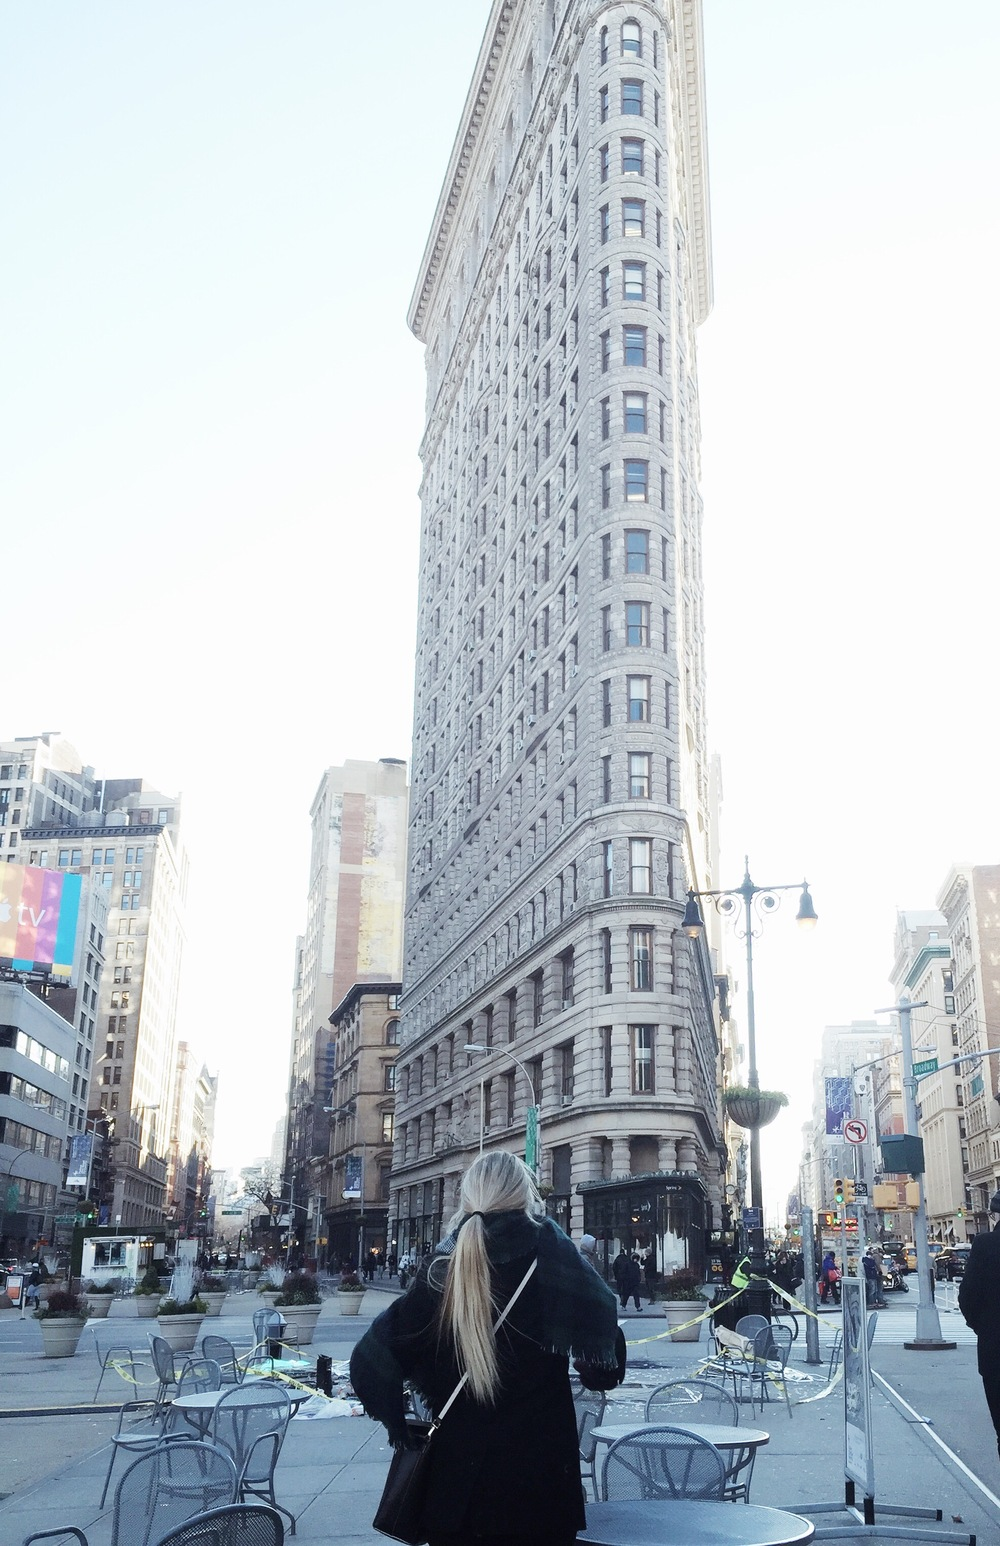 The Flat Iron Building is so cool and much more detailed in person. If you're in the city you have to check it out, and then head to Eataly - which is right next door. The market has the best food selection, and their hot chocolate is literally melted chocolate with whipped cream made in house!